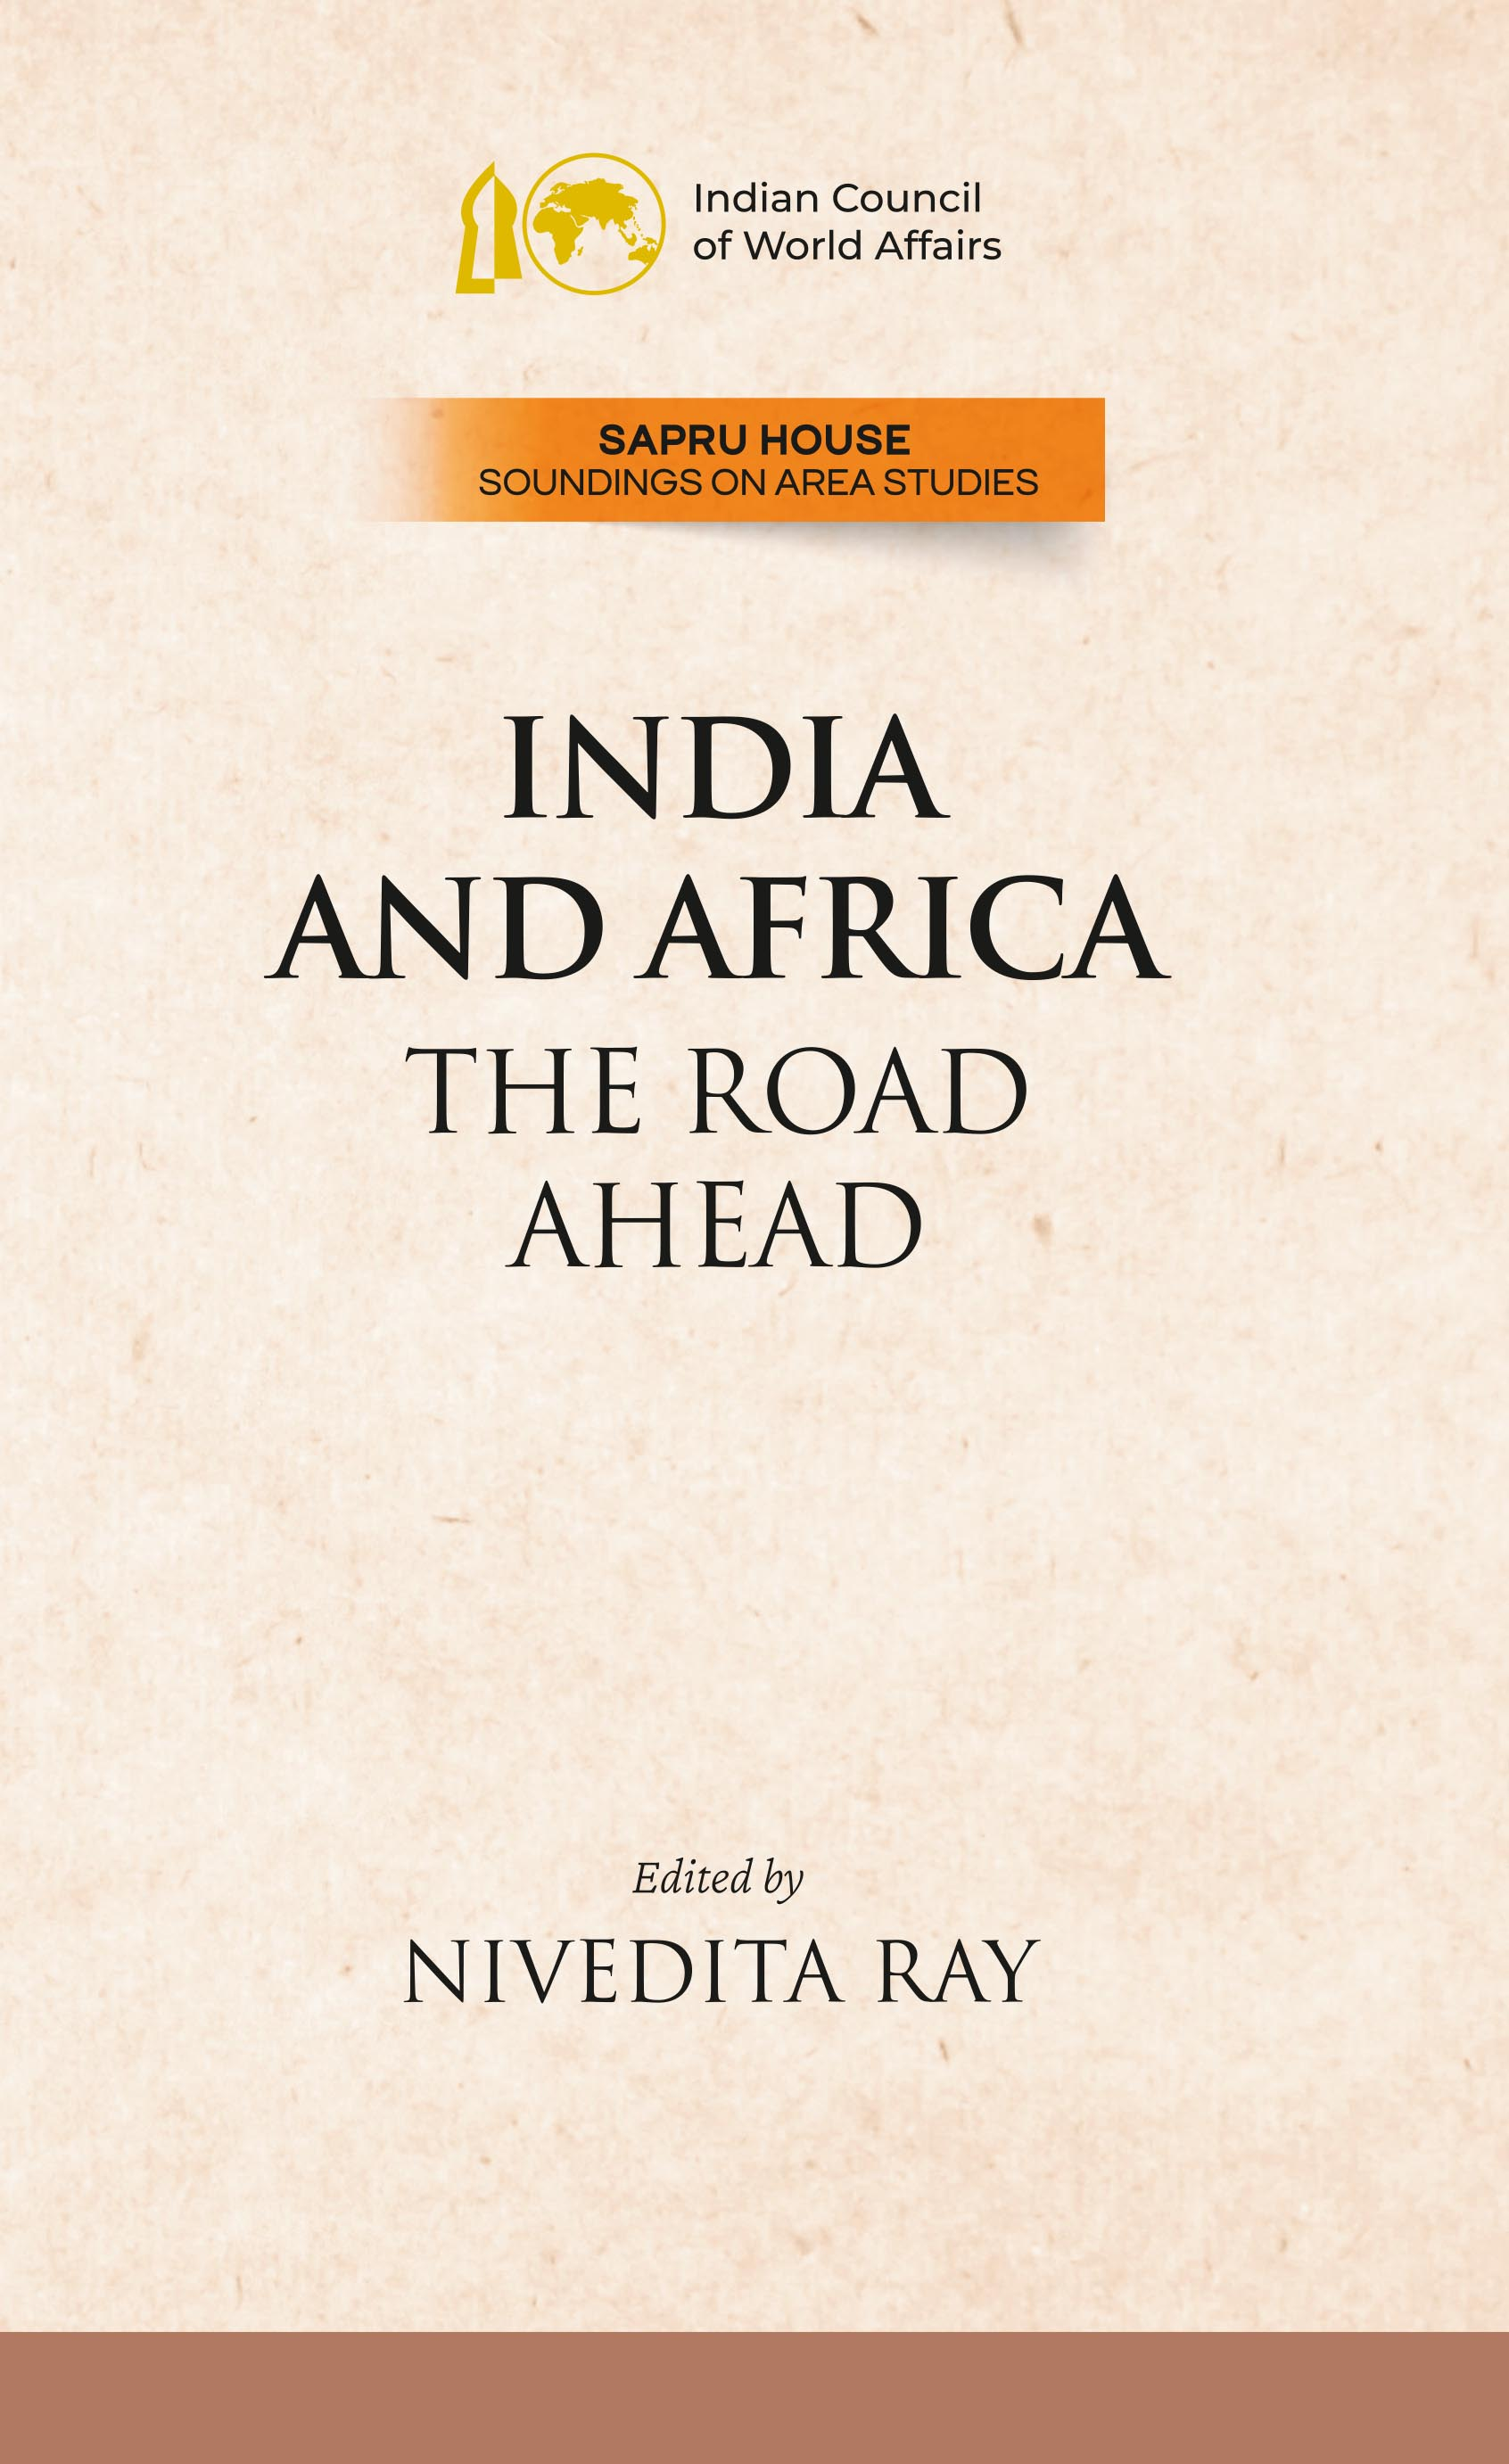 India and Africa: The Road Ahead